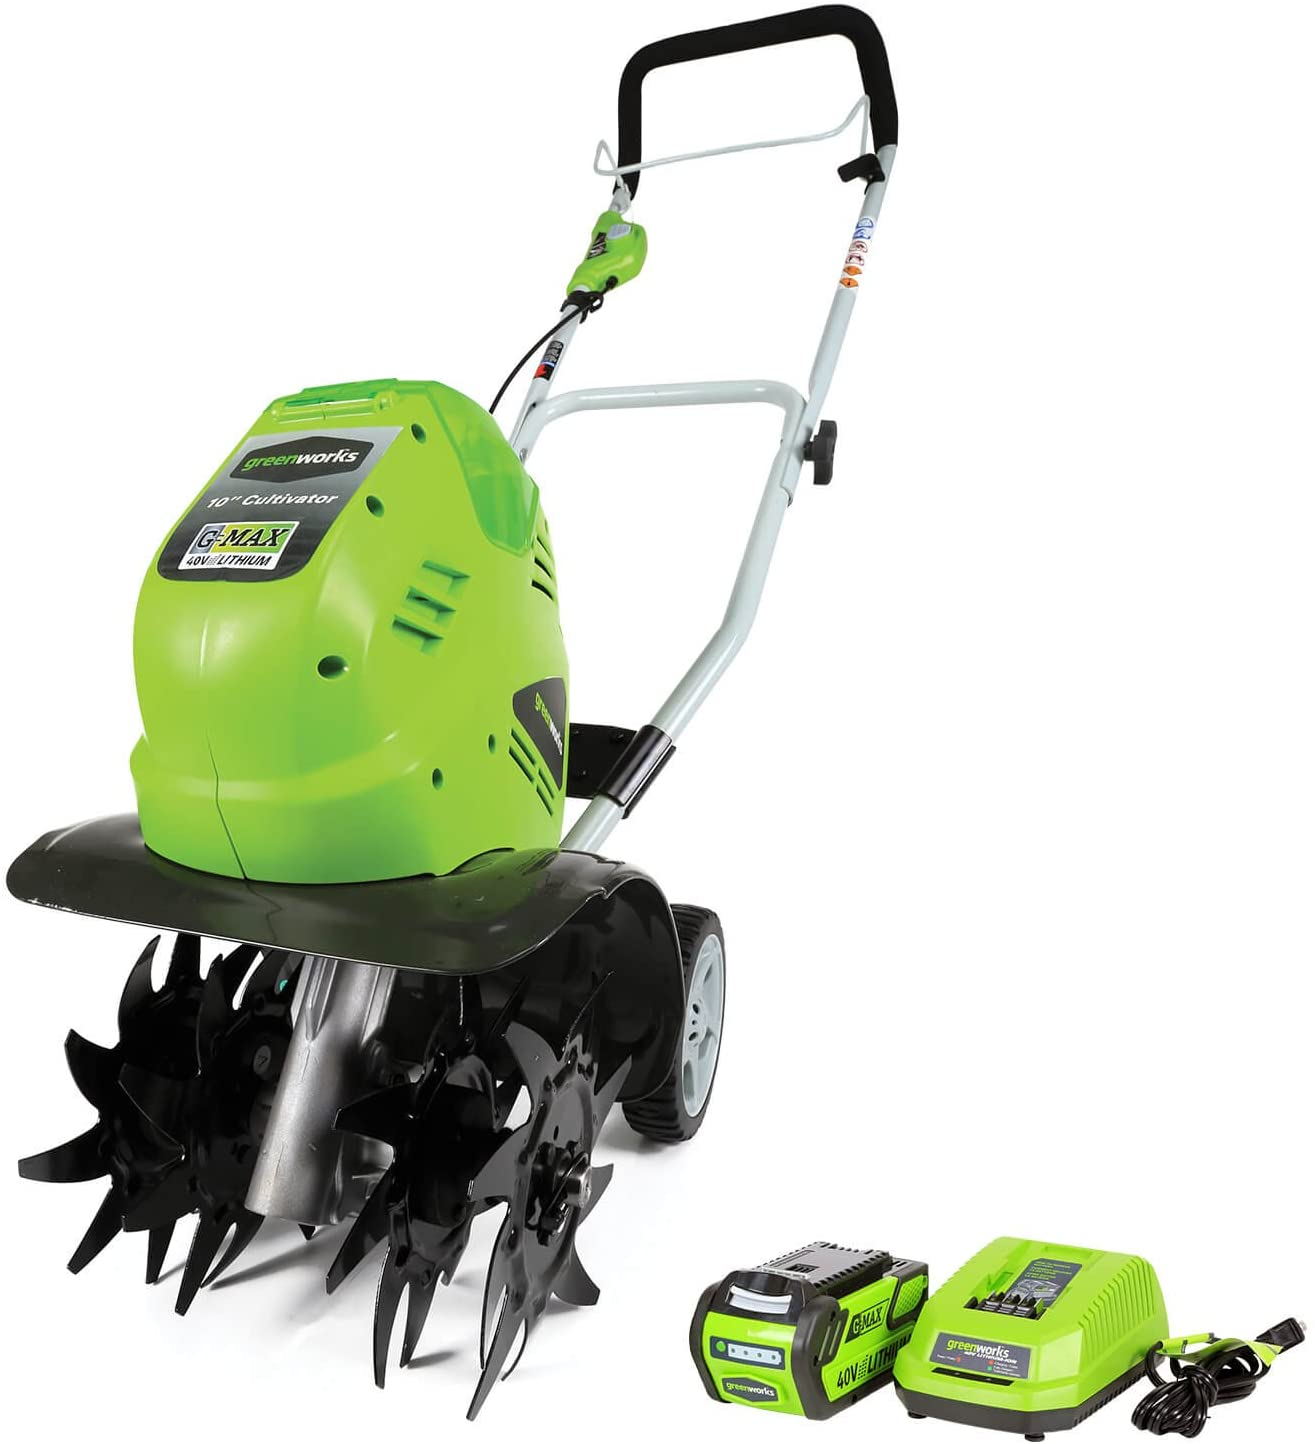 Greenworks 10-Inch 40V Cordless Cultivator, Battery Not Included 27062A : Garden & Outdoor